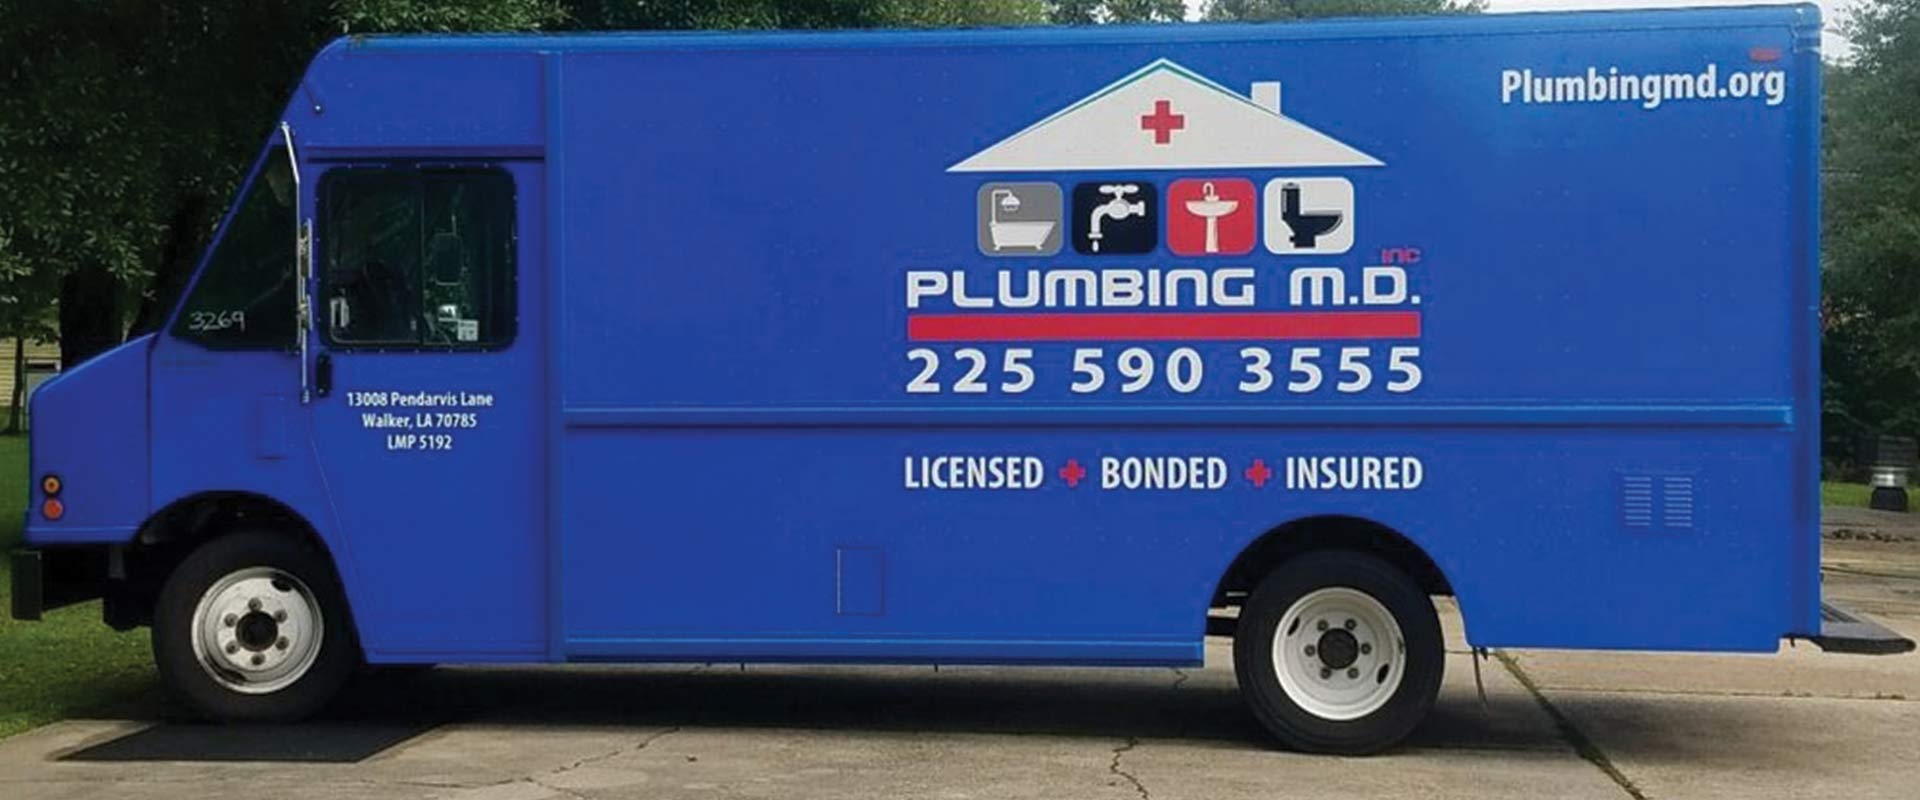 Top-notch plumbing services at competitive pricing